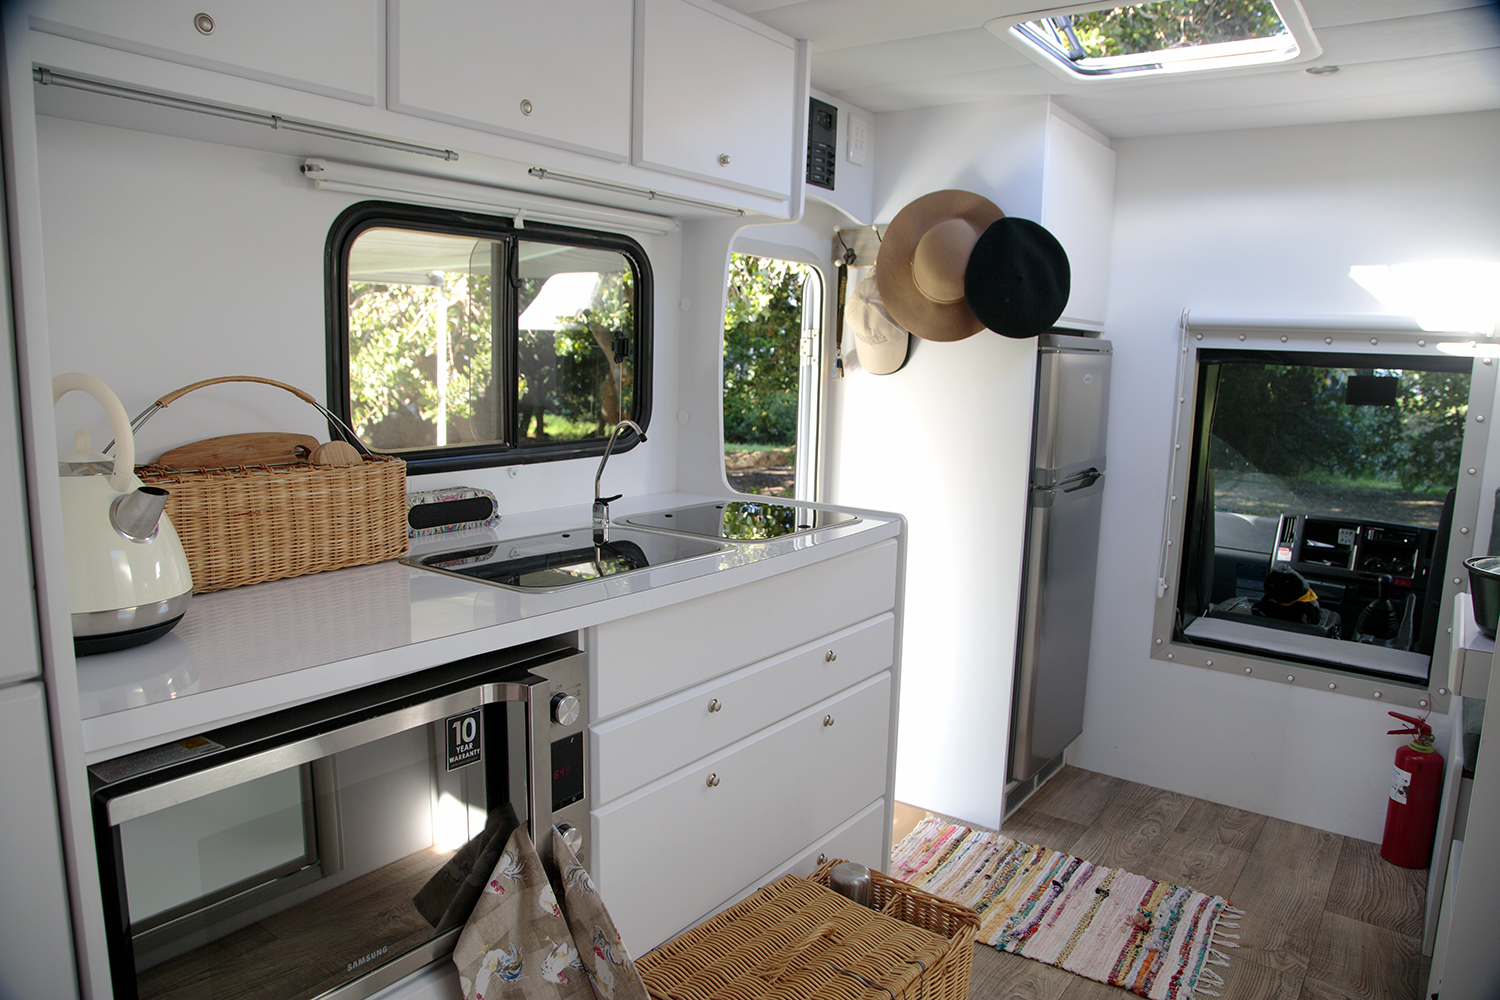 Glamping In Style - Have Keys and Wheels Will Travel - Image 15